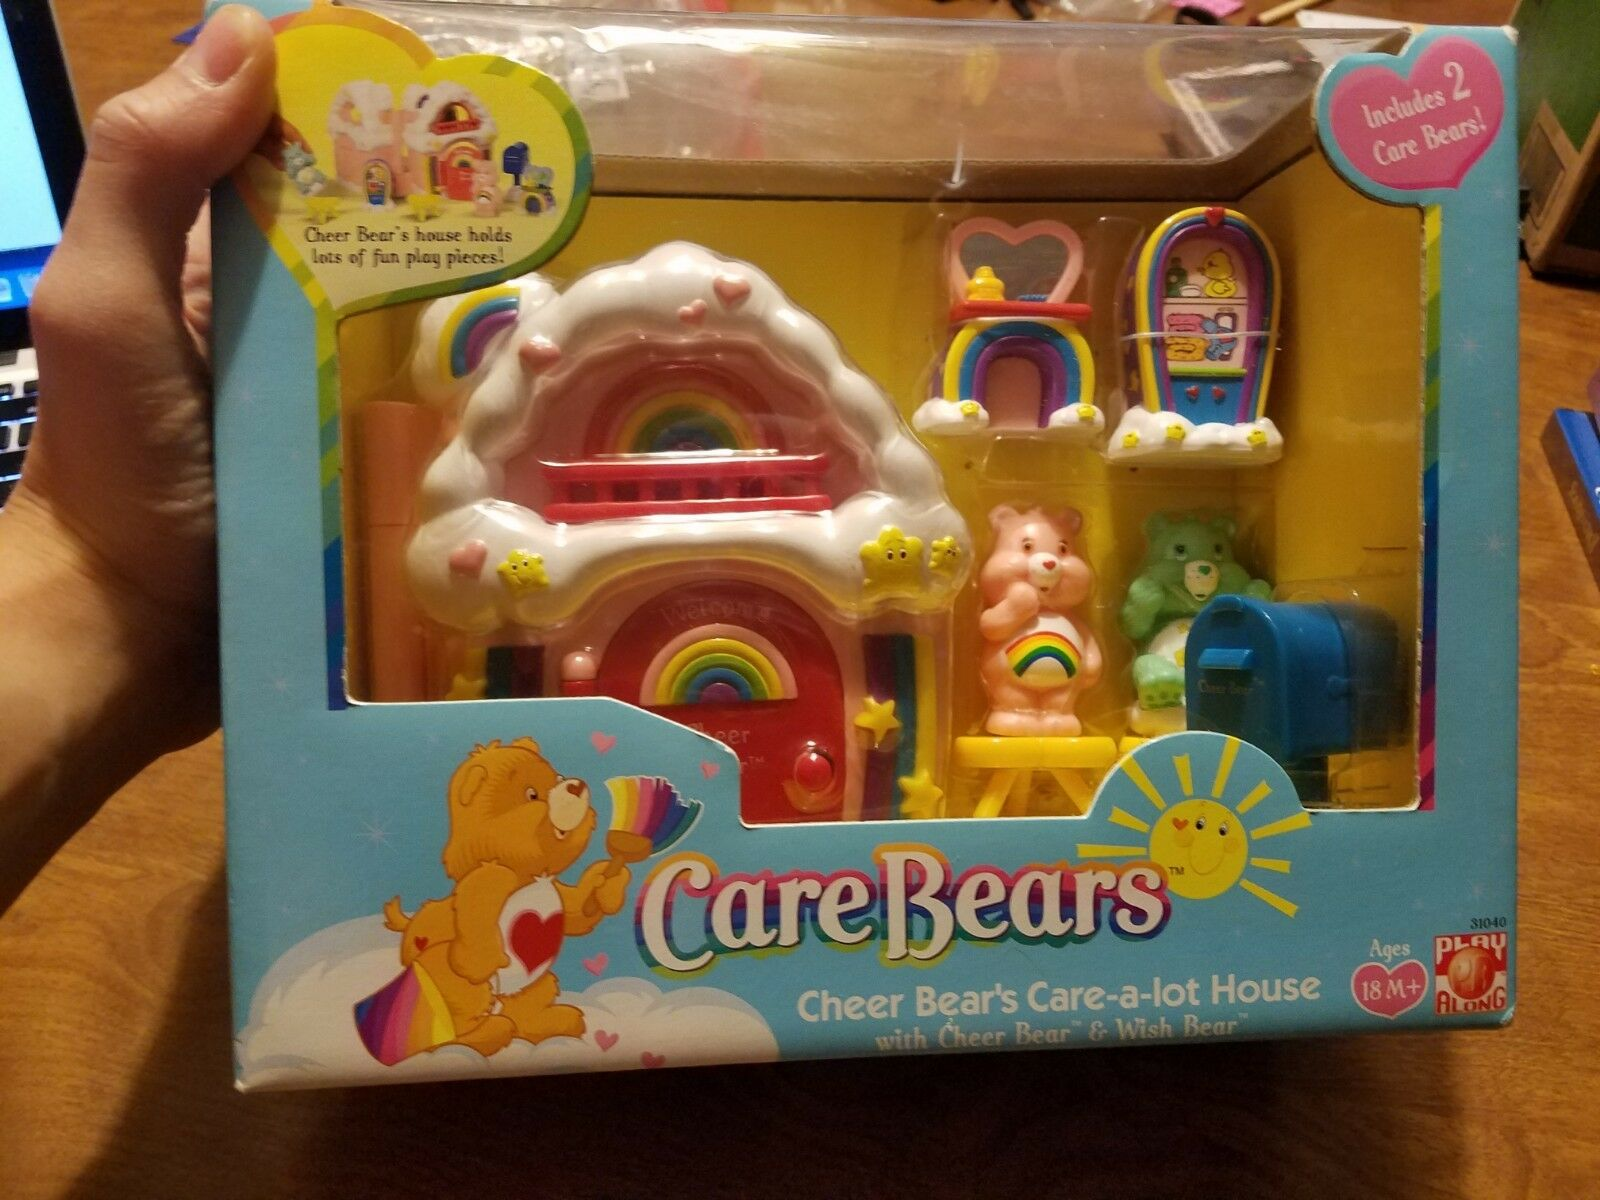 voituree Bears Playset Cheer Bear's voituree-a-Masse haus with Cheer Bear & Wish Bear NEW